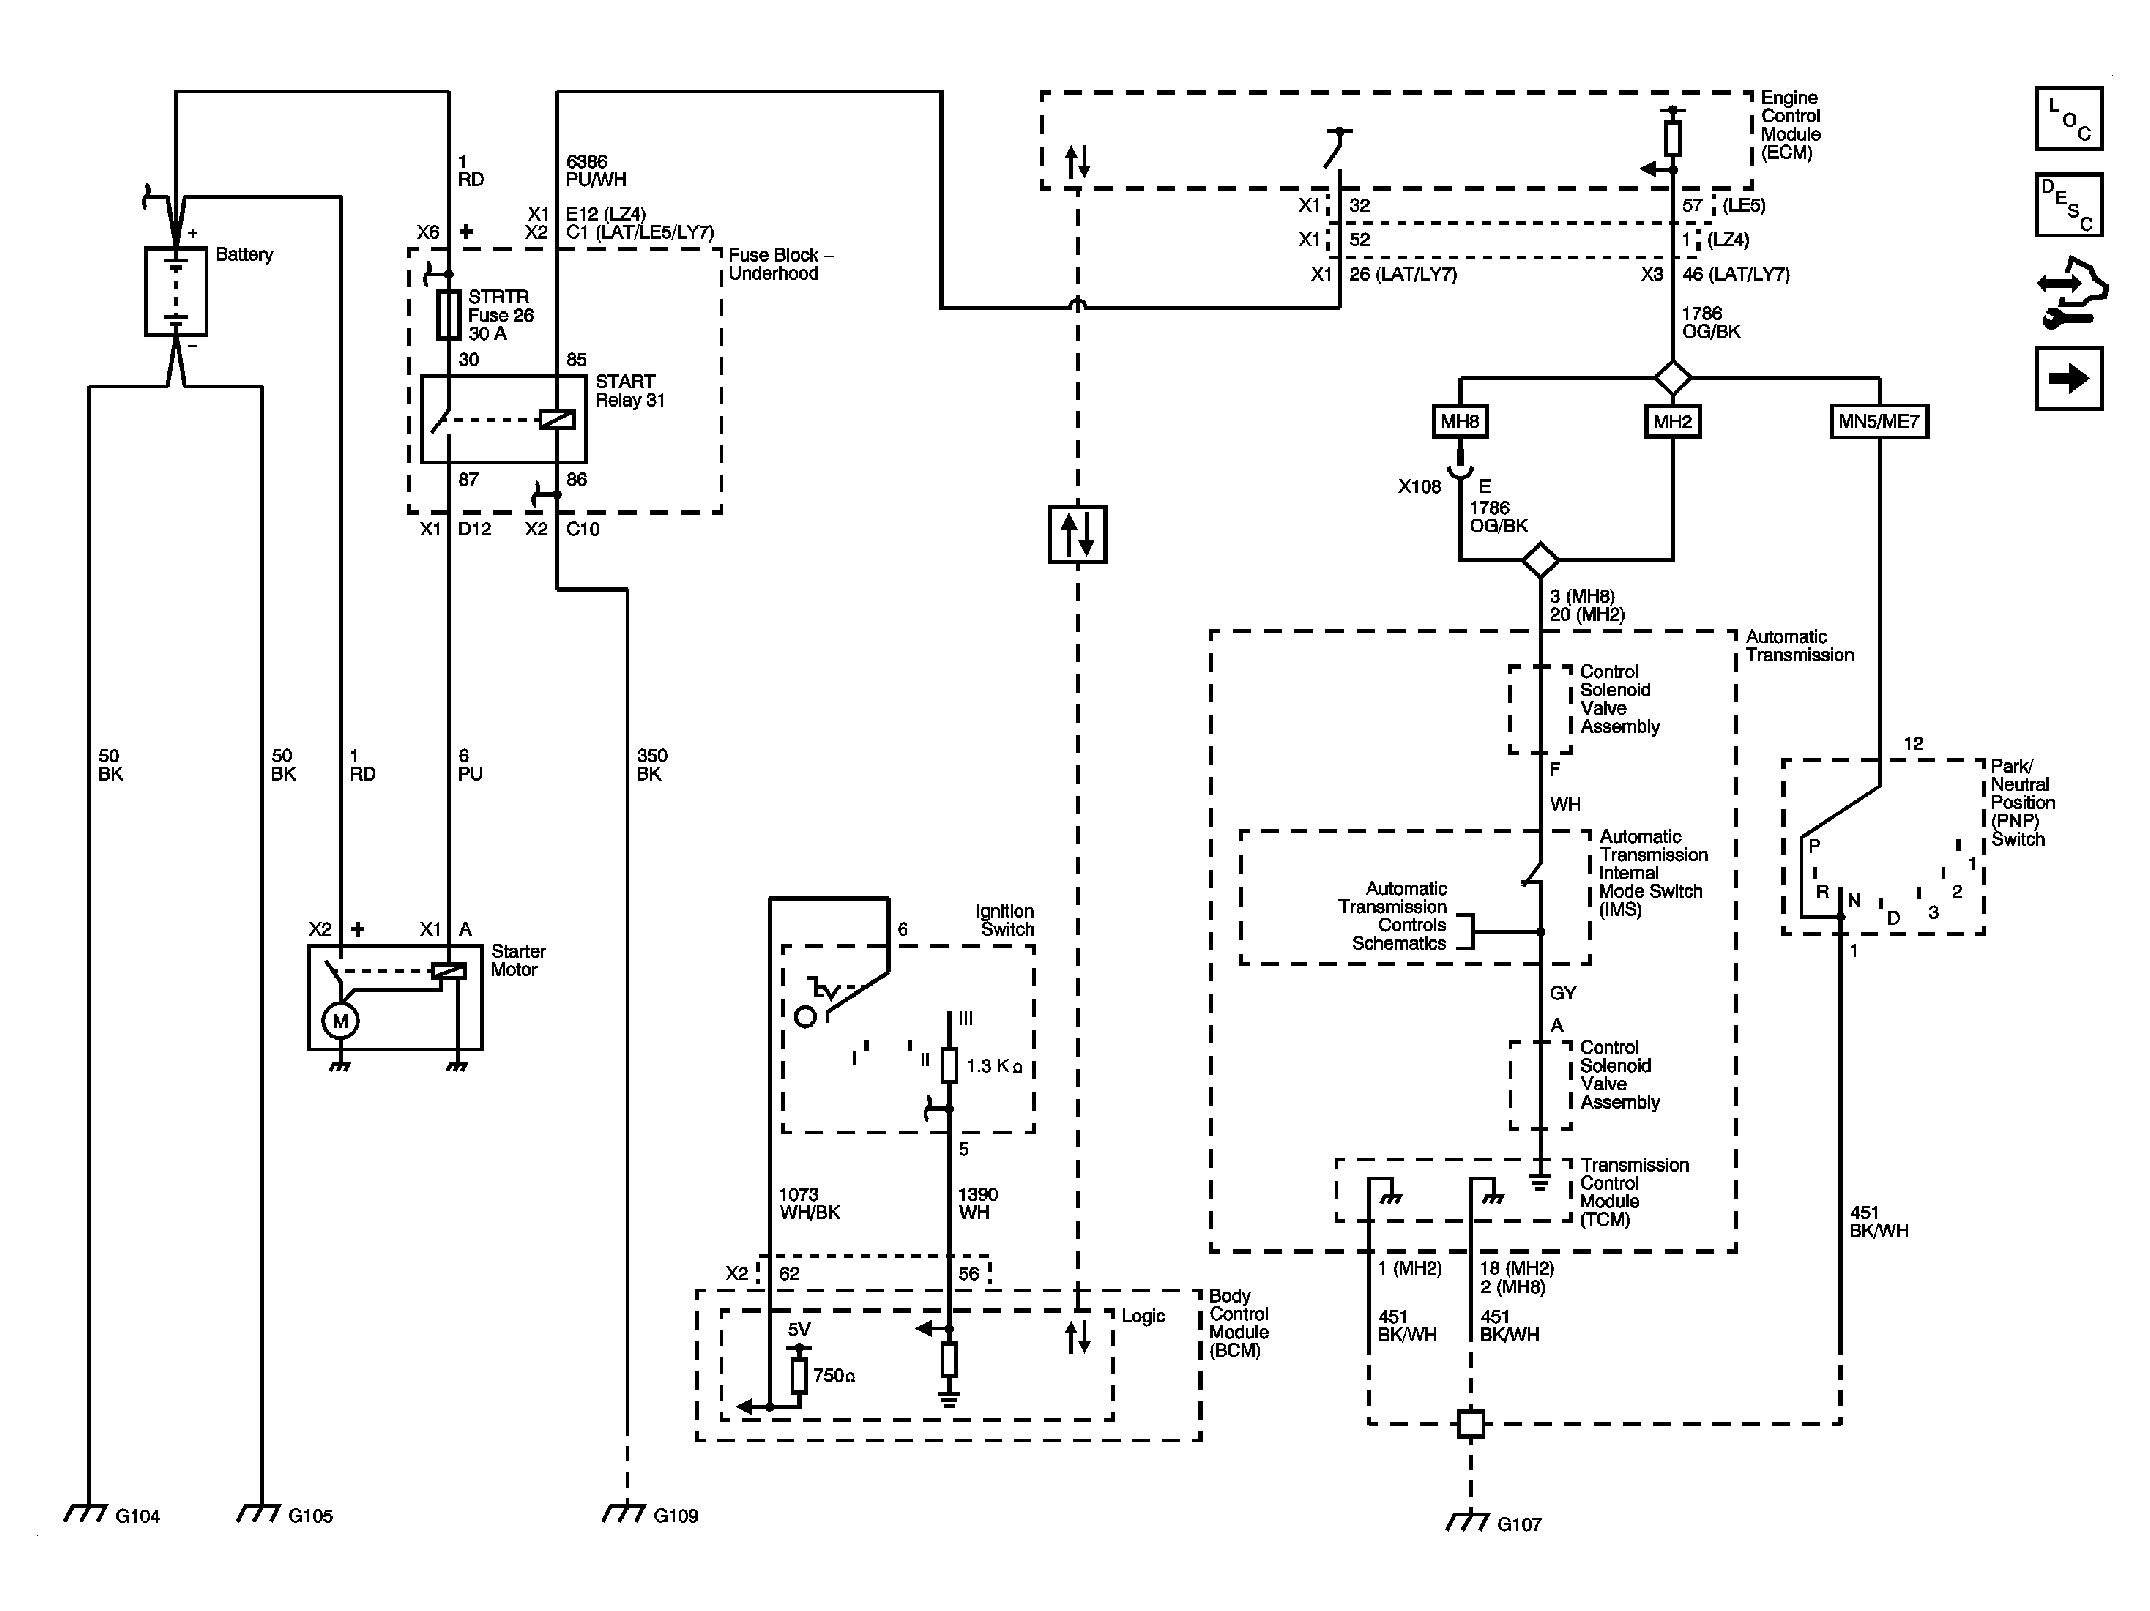 1977 Ford F150 Ignition Switch Wiring Diagram from schematron.org